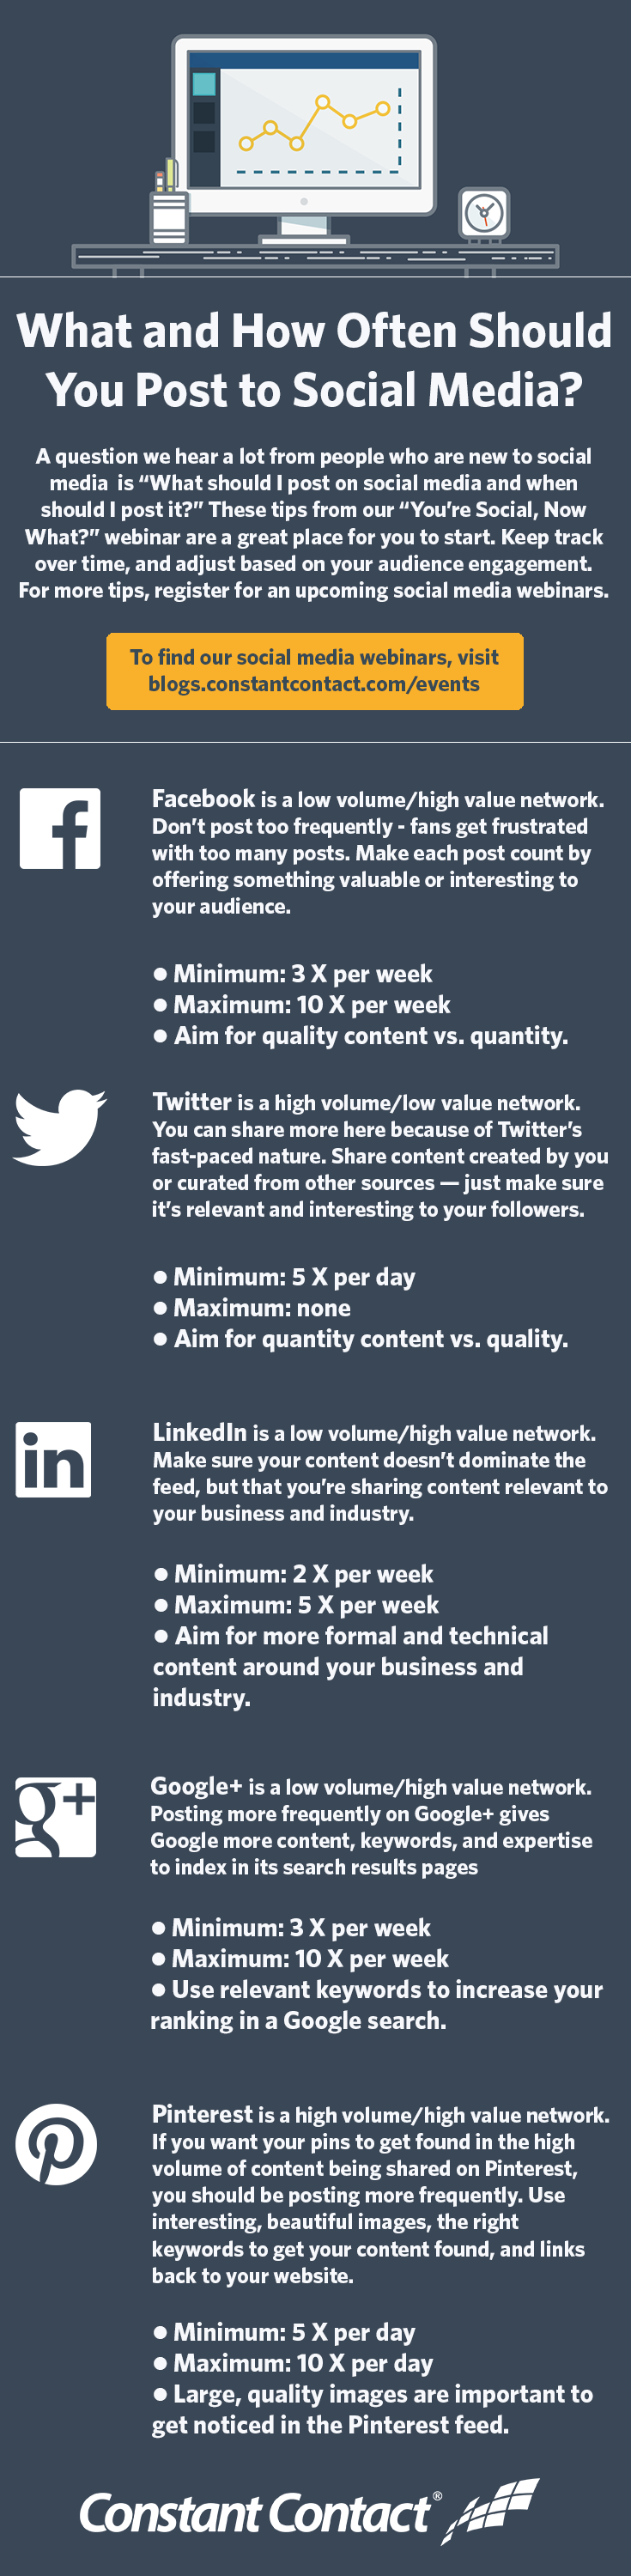 What And How Often Should You Post On Social Media Infographic